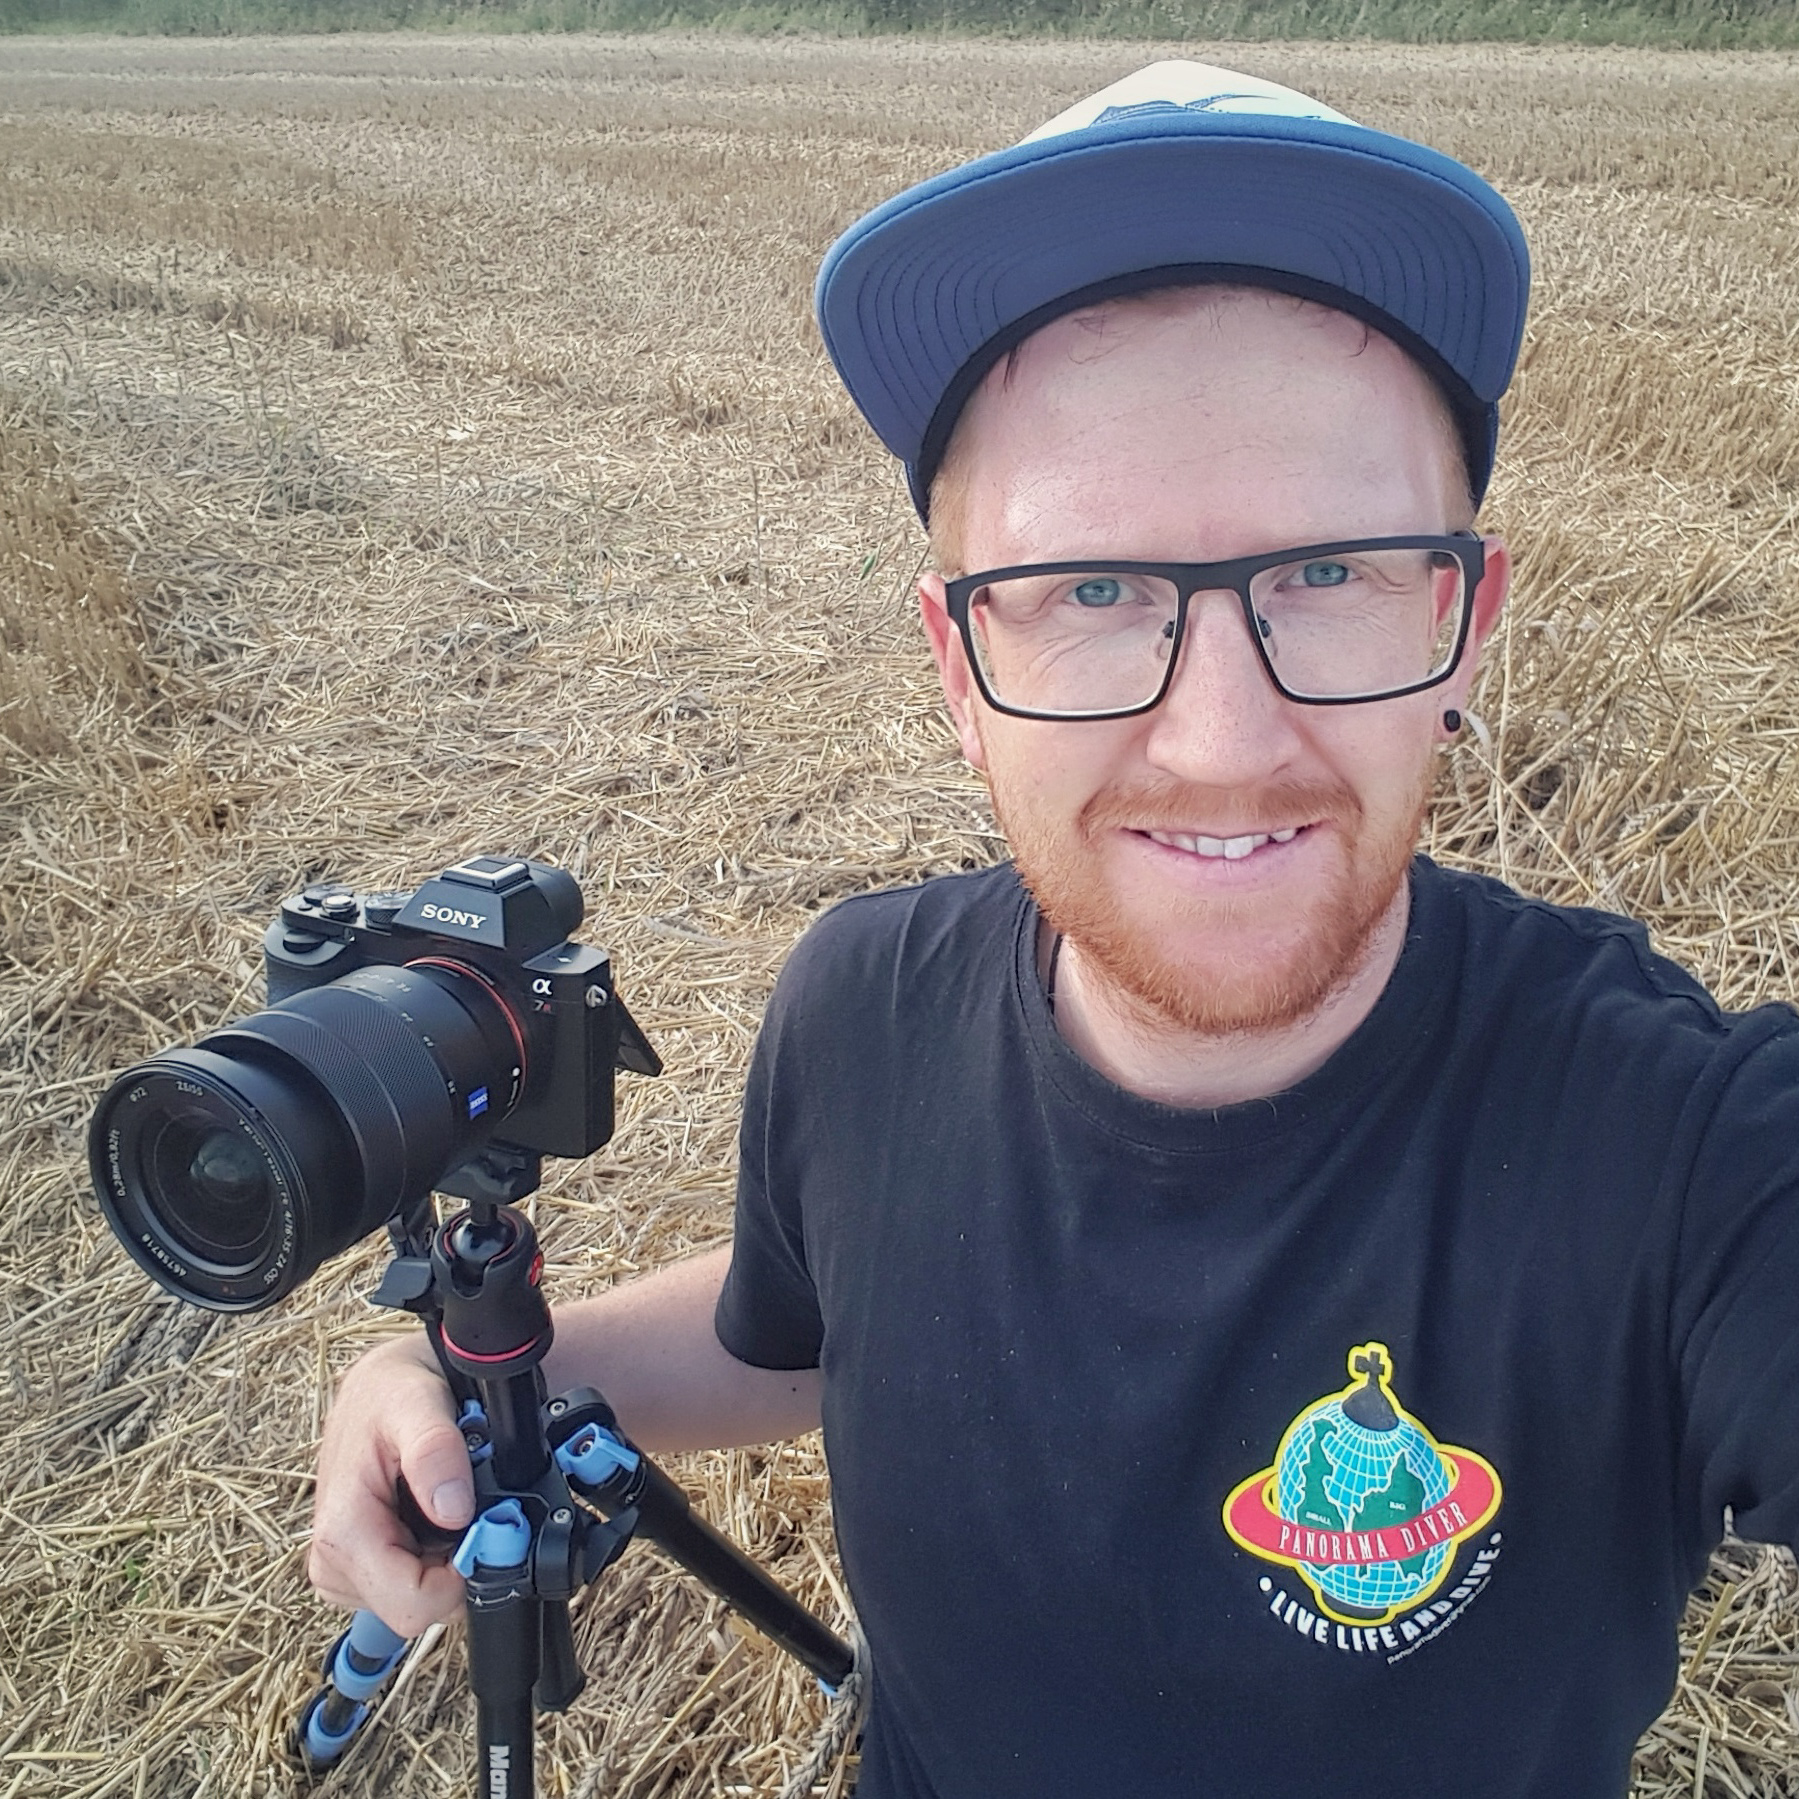 Robin K. Photography - Robin is a self-taught landscape photography enthusiast who works as a primary school teacher when he's not out taking images.